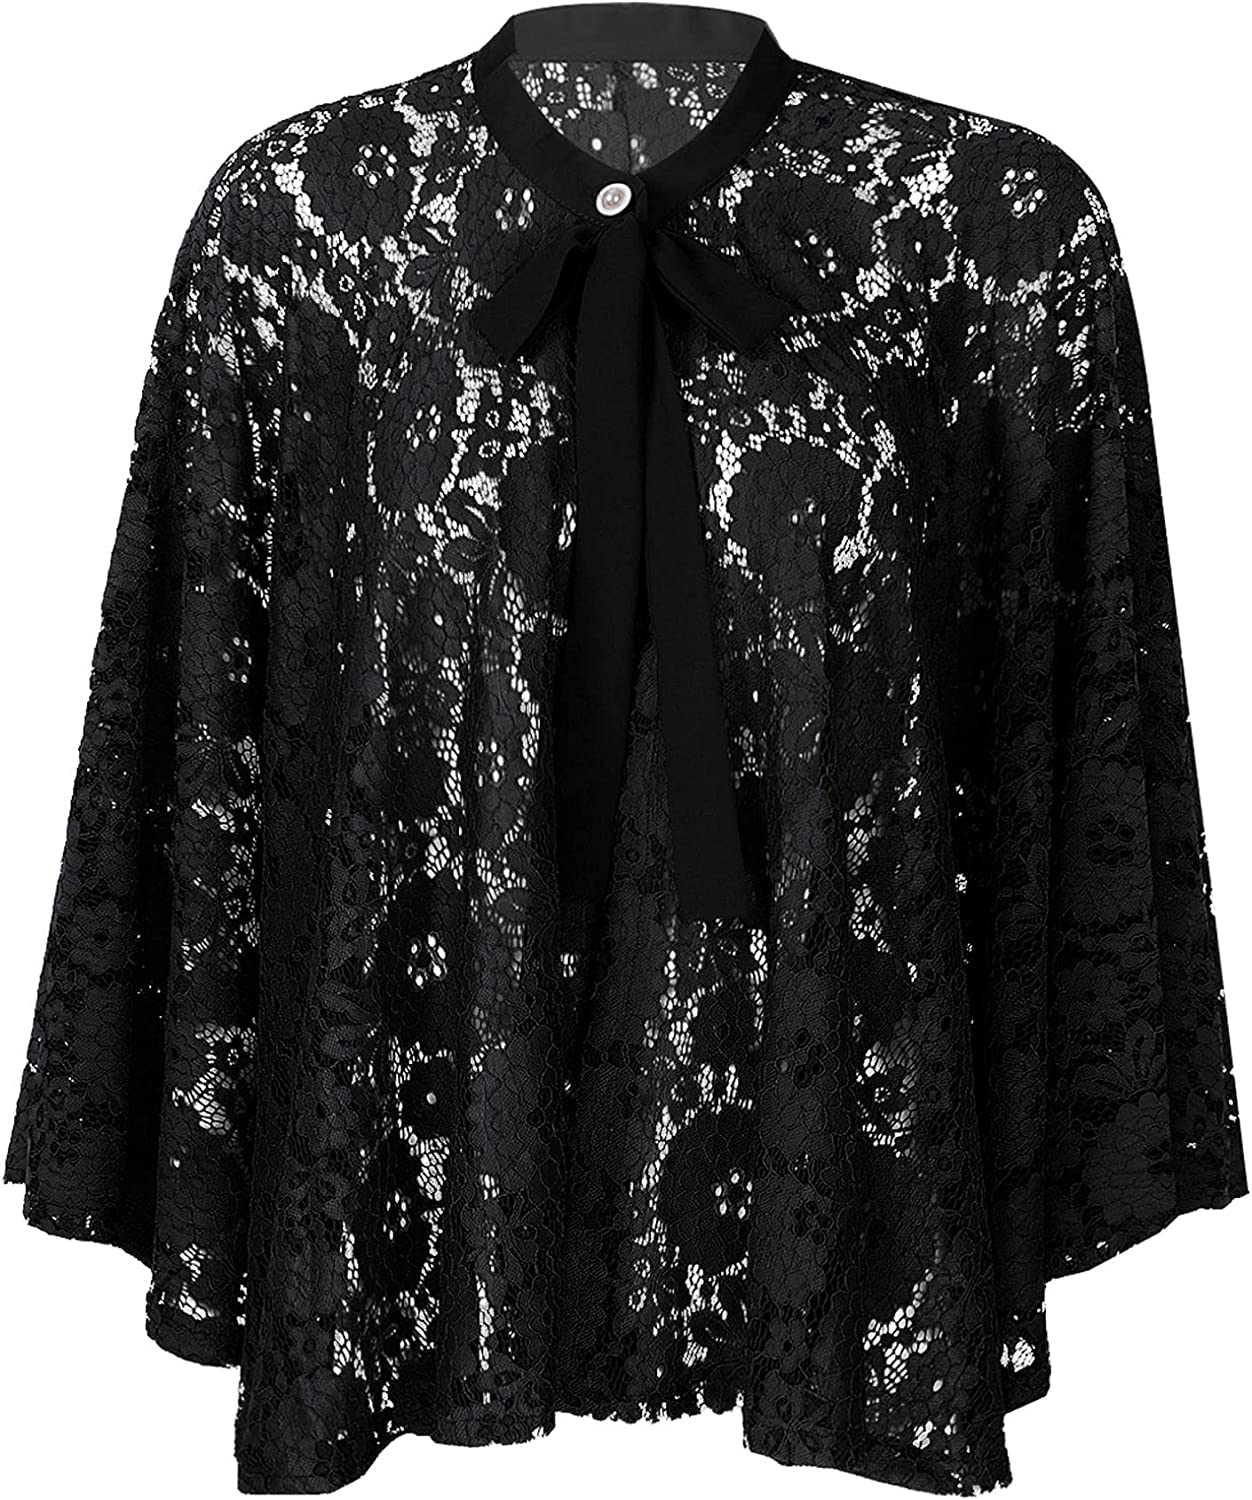 Choomomo Womens Dressy Shawl Wraps Loose Casual Hollow Lace Cape Cover Up for Wedding Evening Dress